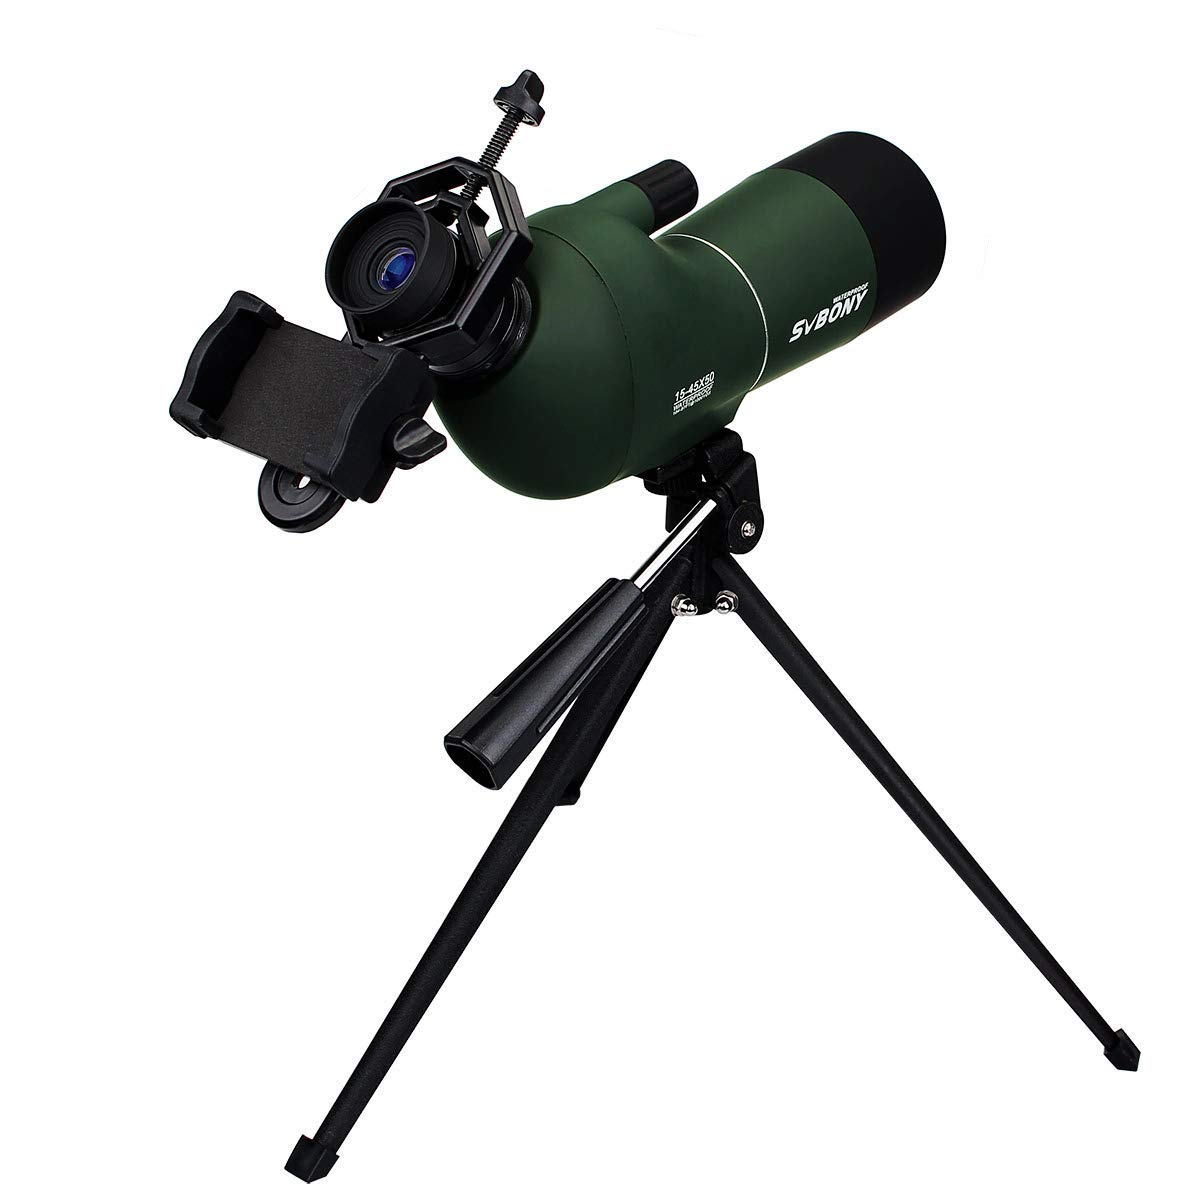 SVBONY SV28 Spotting Scope 15-45x50mm Waterproof Angled Zoom Spotting Scopes for Target Shooting Bird Watching Archery Hunting with Tripod and Phone Adapter